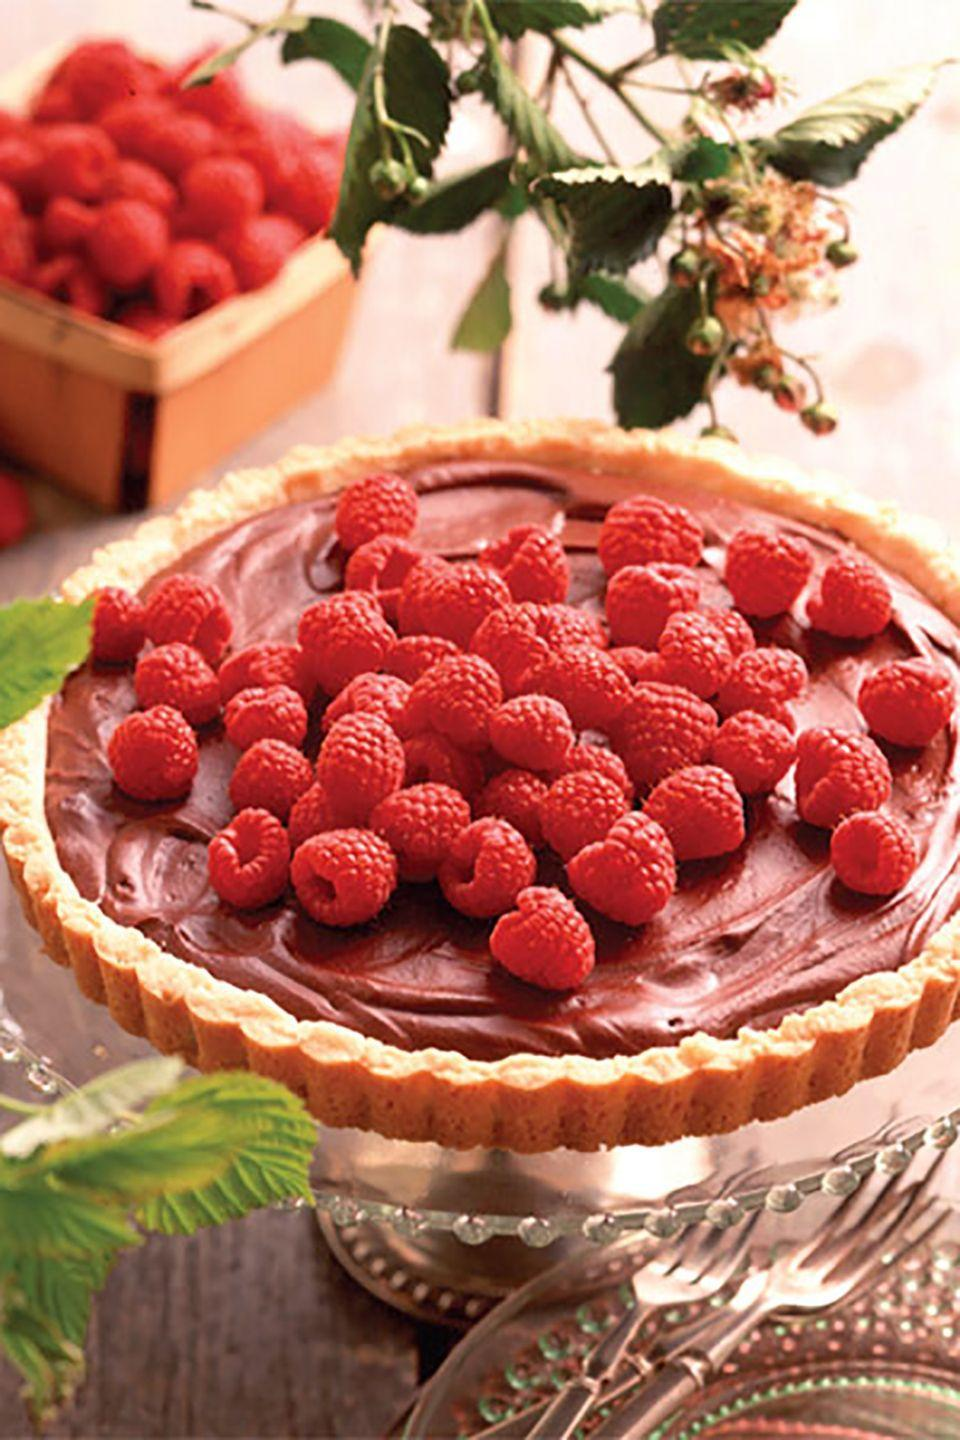 """<p>The rich chocolate filling topped with fresh raspberries is delicious enough on its own, but the buttery shortbread crust adds a savory crunch that makes this dessert irresistible. </p><p><strong><a href=""""https://www.countryliving.com/food-drinks/recipes/a7130/raspberry-ganache-tart-441/"""" rel=""""nofollow noopener"""" target=""""_blank"""" data-ylk=""""slk:Get the recipe"""" class=""""link rapid-noclick-resp"""">Get the recipe</a>.</strong></p>"""